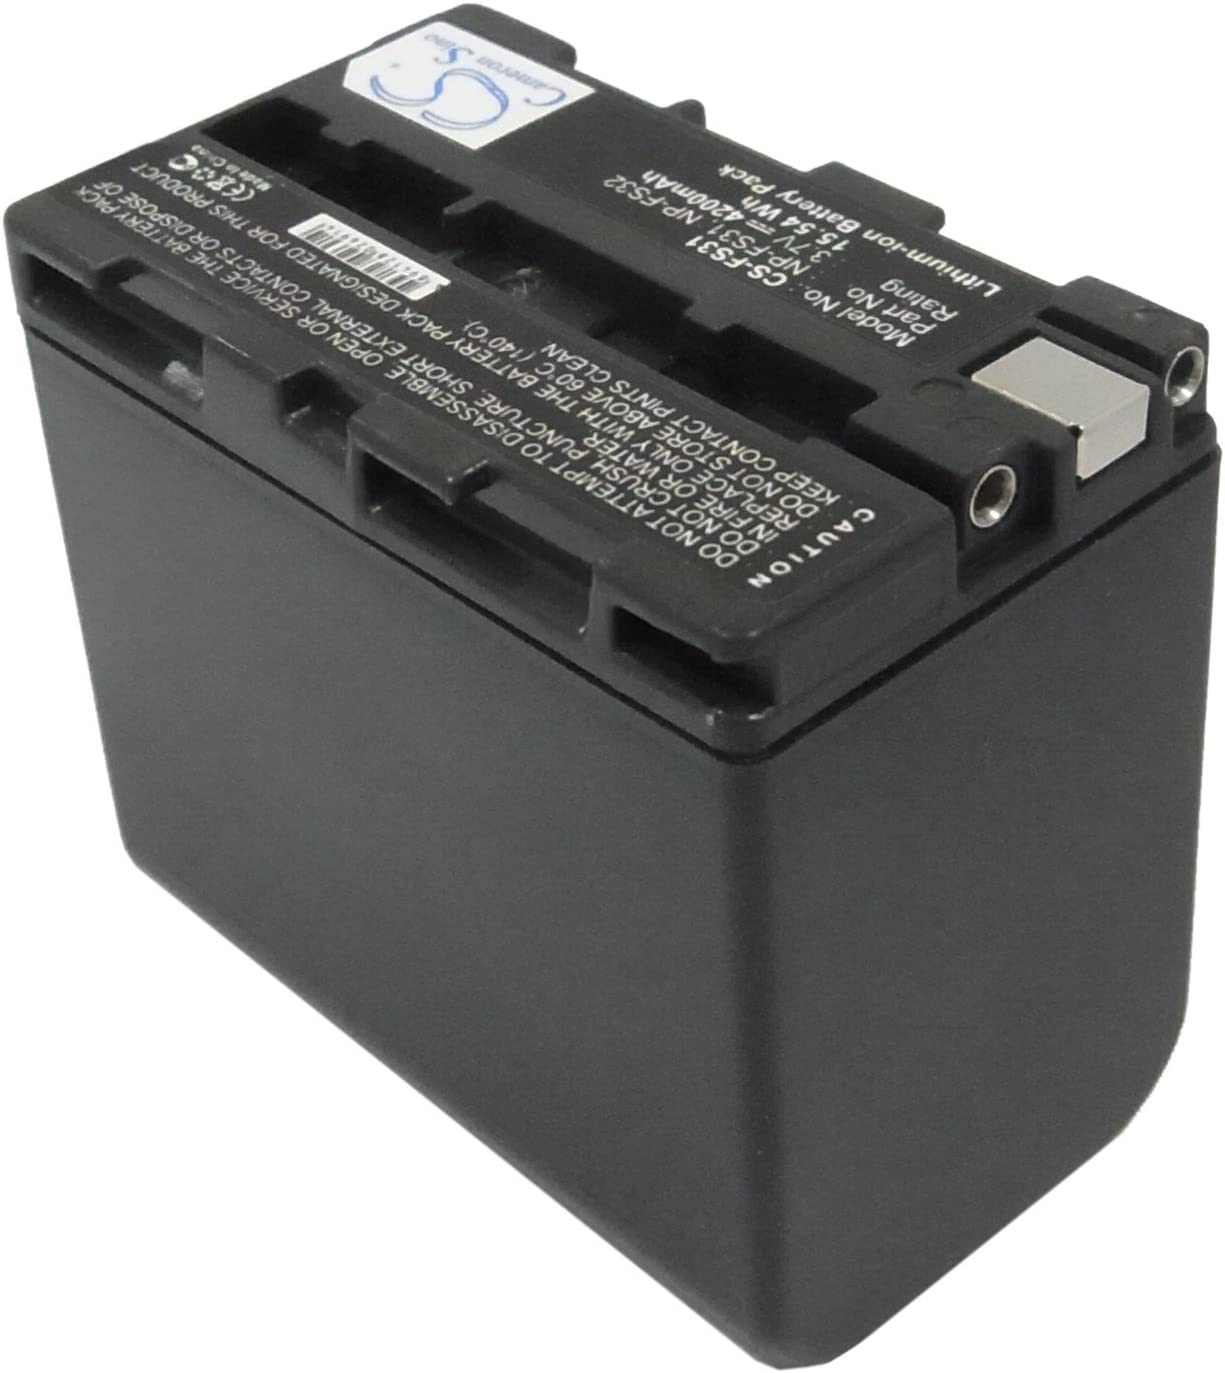 Cameron Sino Rechargeble Battery Luxury for National uniform free shipping NP-FS33 Sony